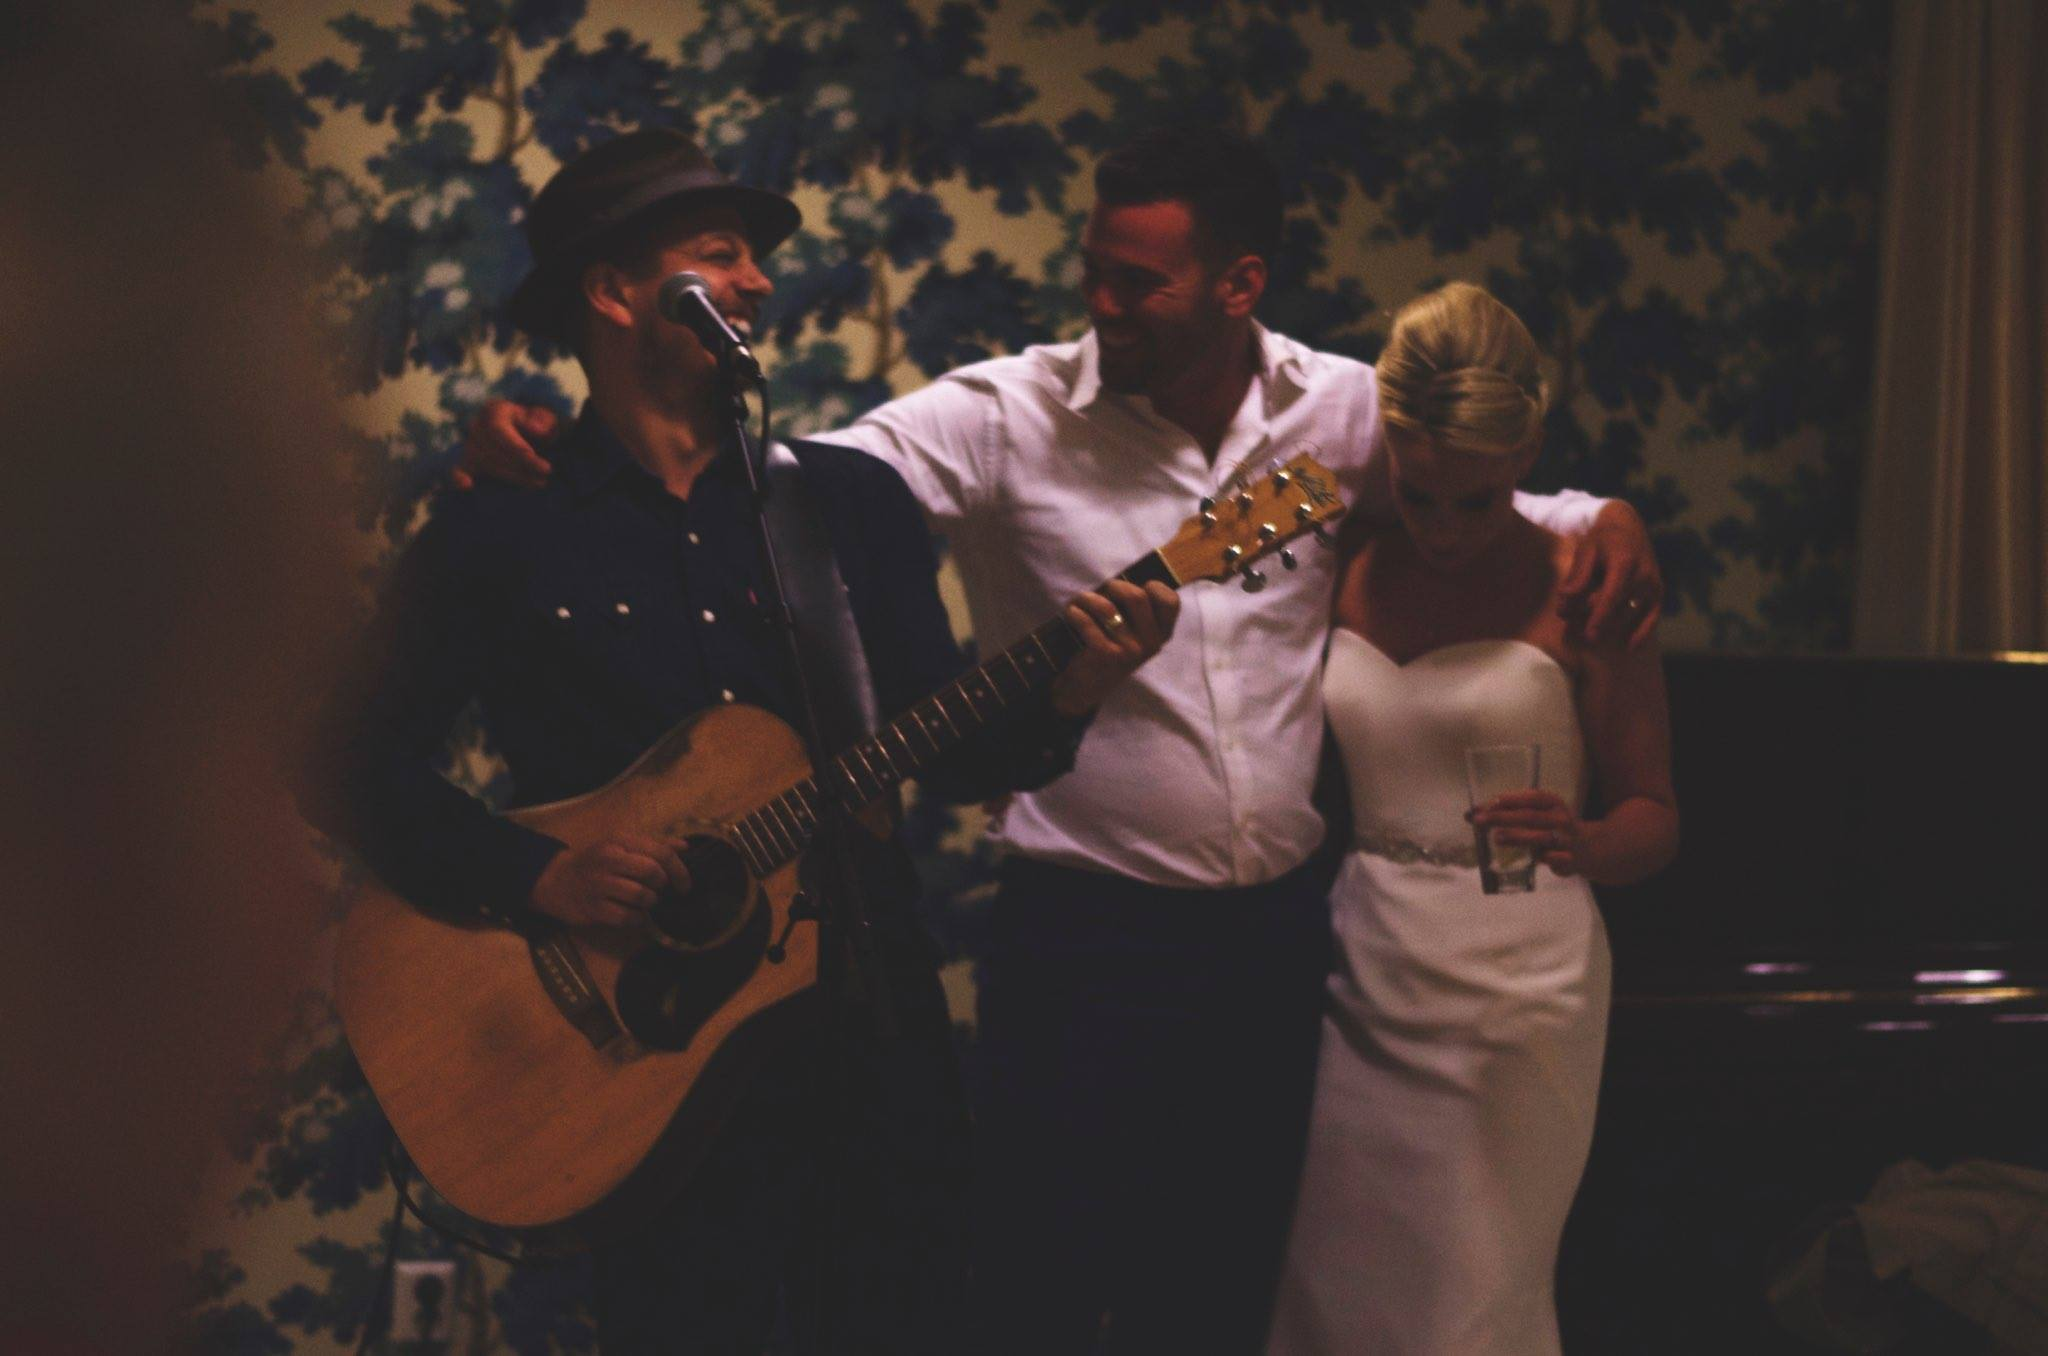 Live acoustic wedding music - Finland 2